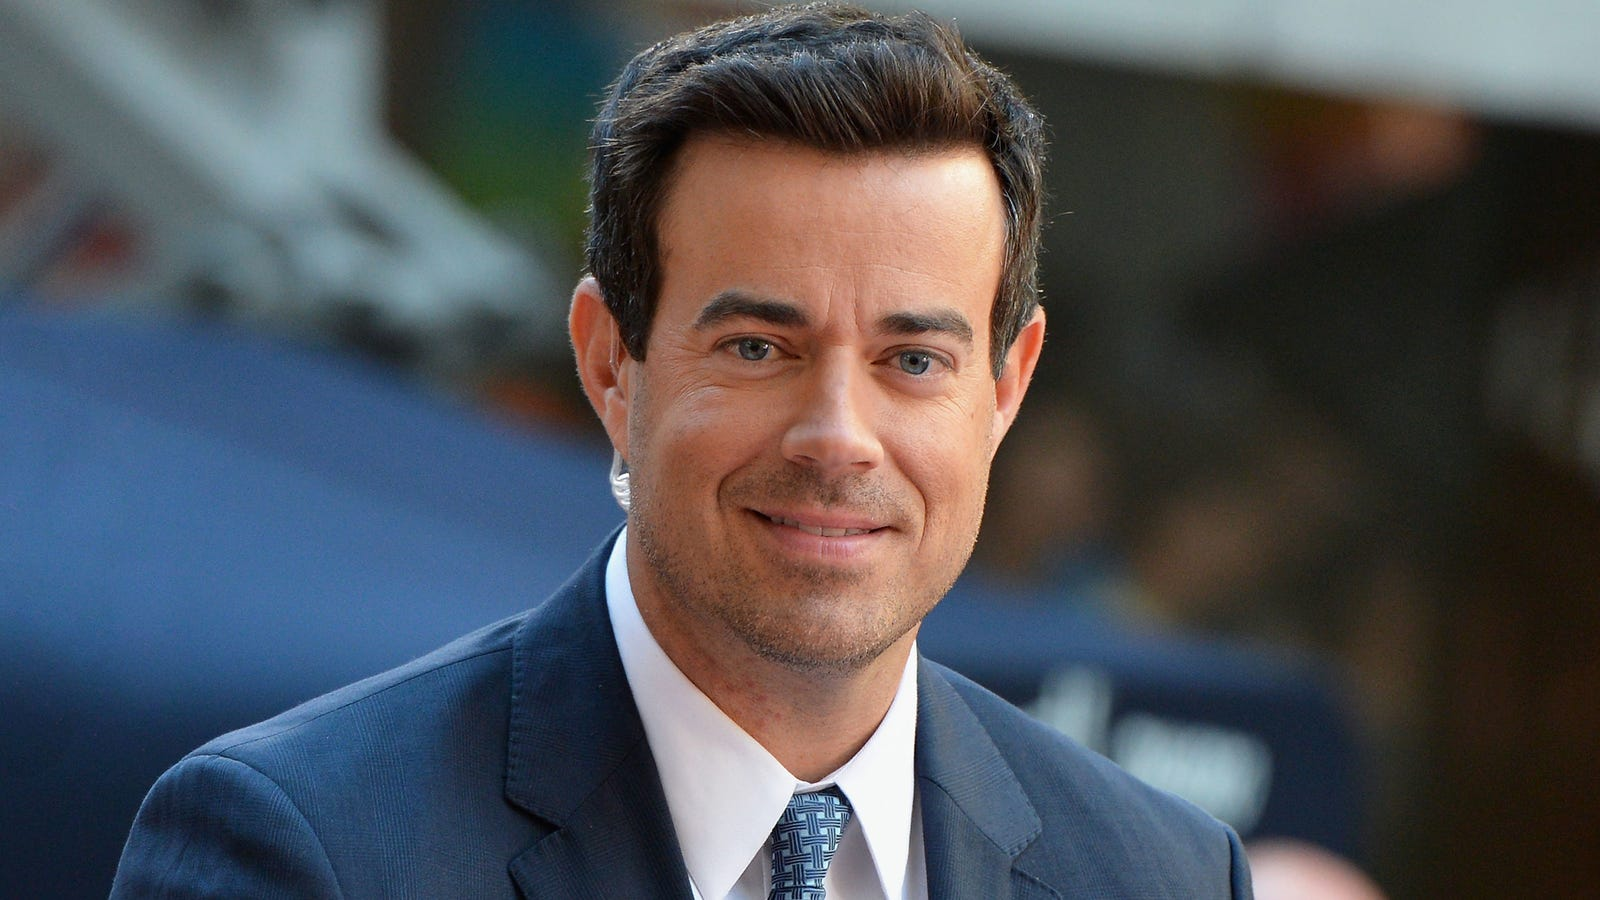 carson daly call last coming end apparently been years